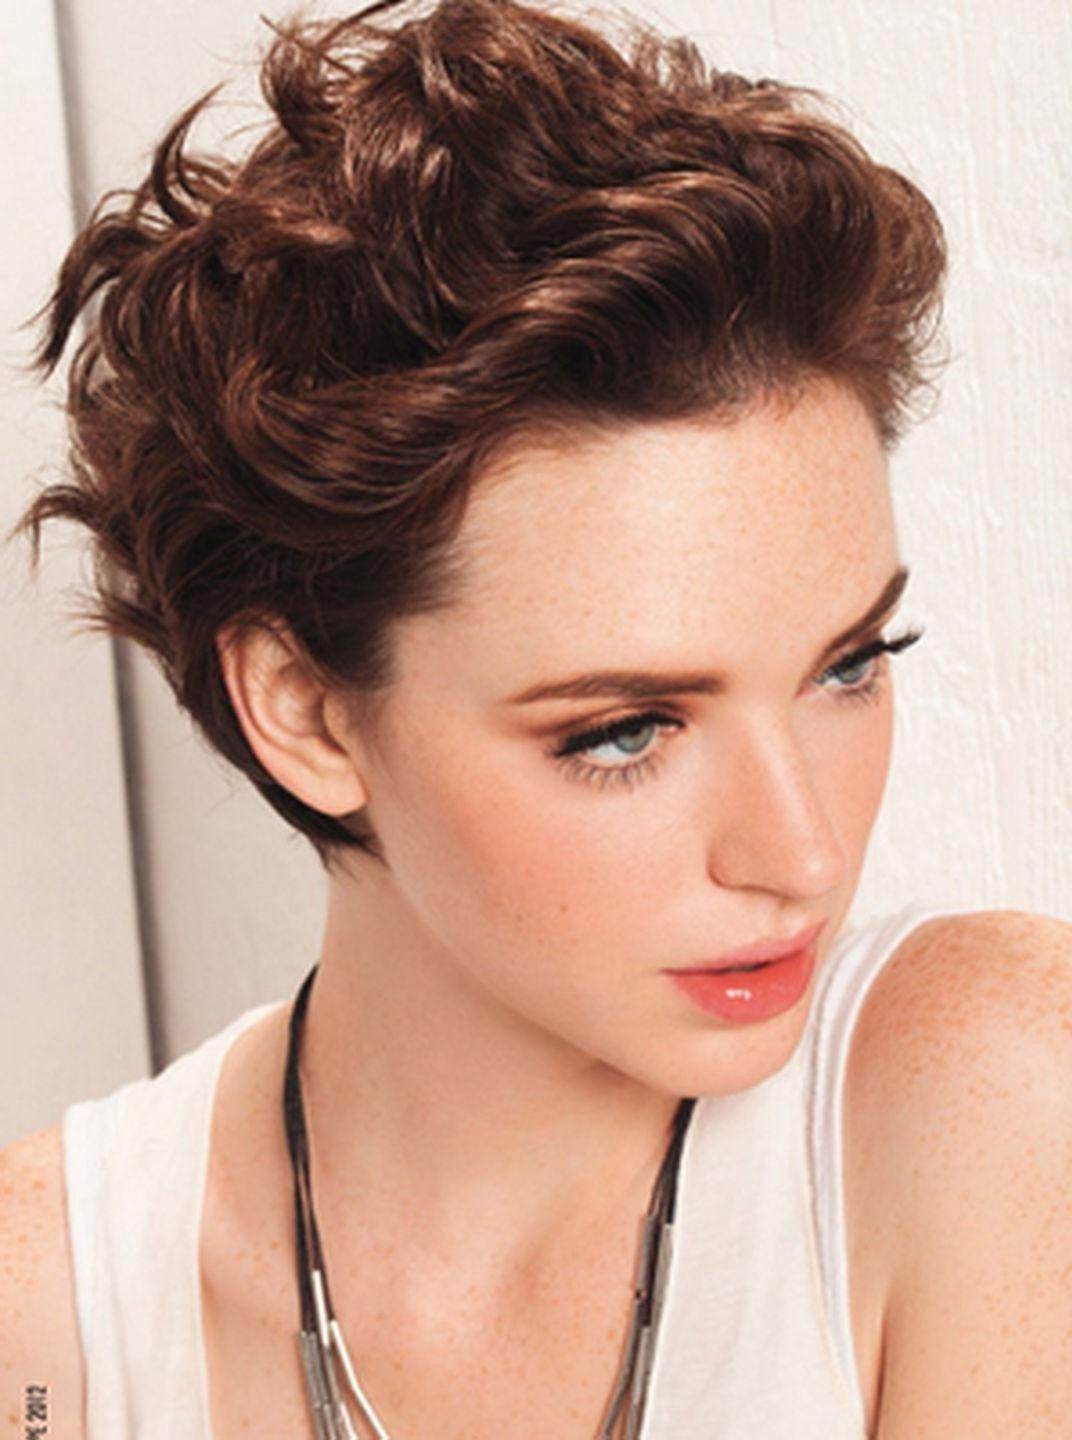 Luxury Short Hairstyles Wavy Thick Hair – Razanflight   Short With Short Haircuts For Wavy Thick Hair (View 7 of 25)